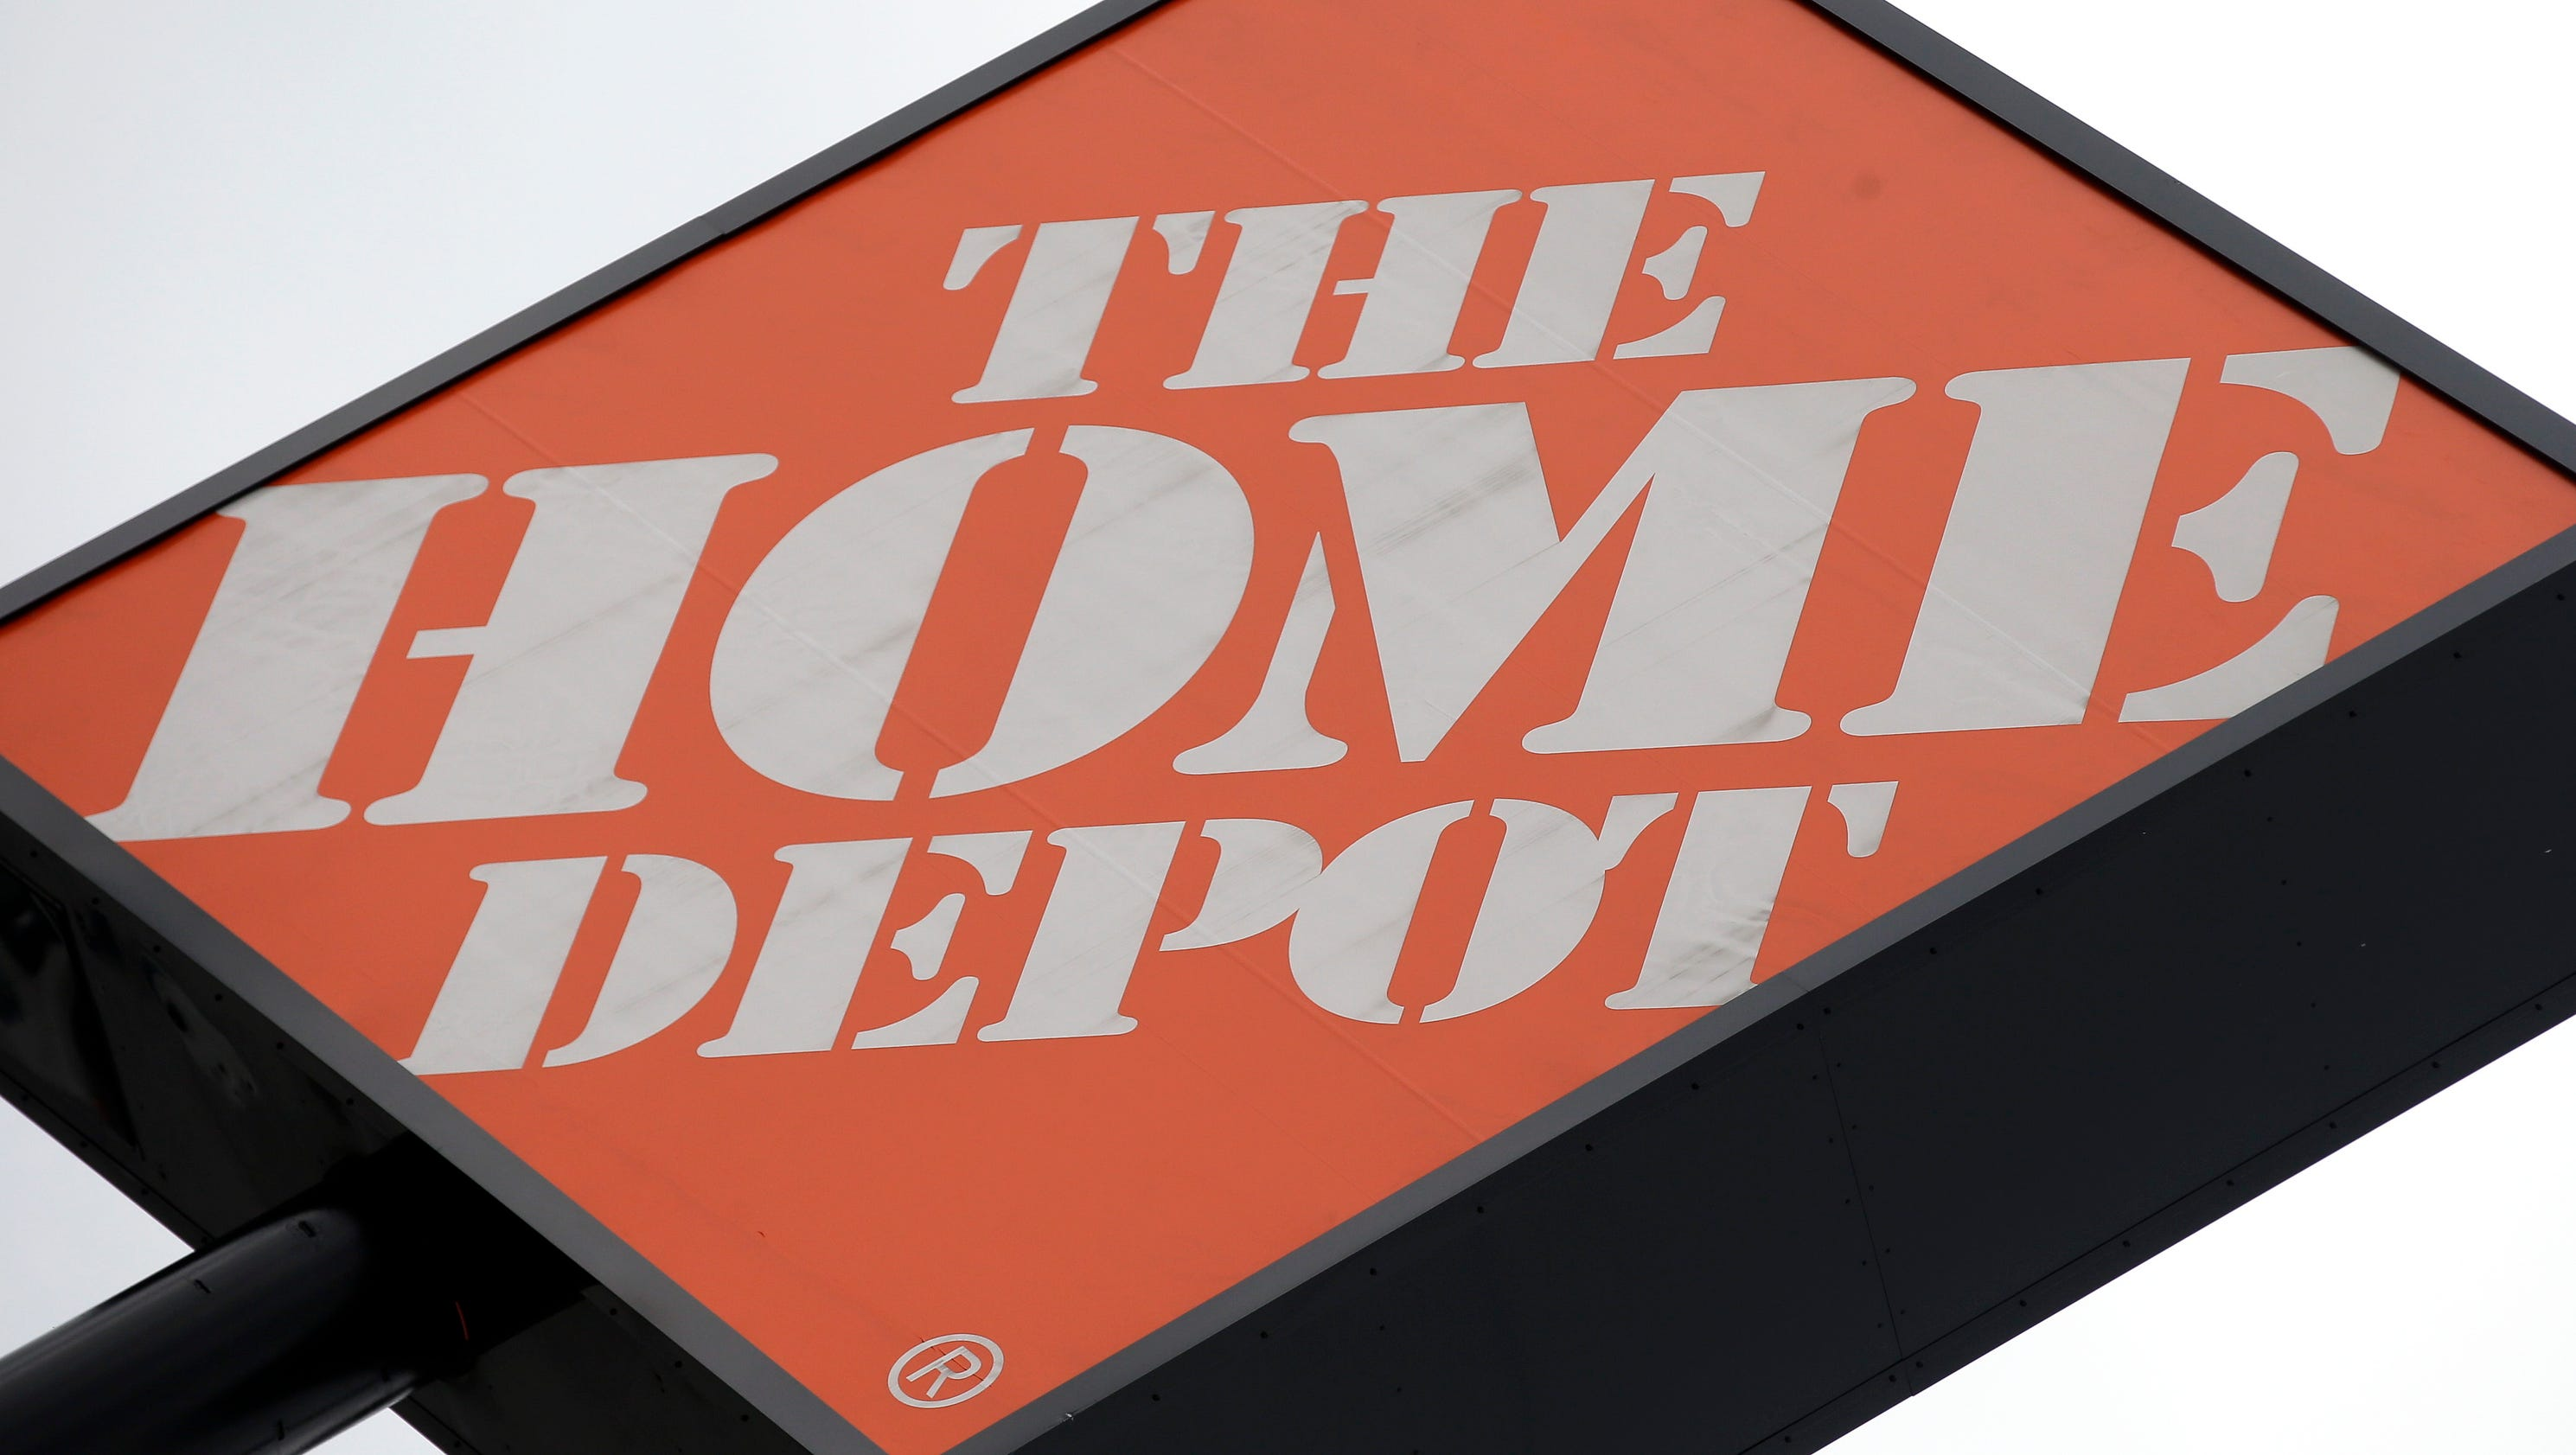 Home Depot settles charges that it sold recalled products